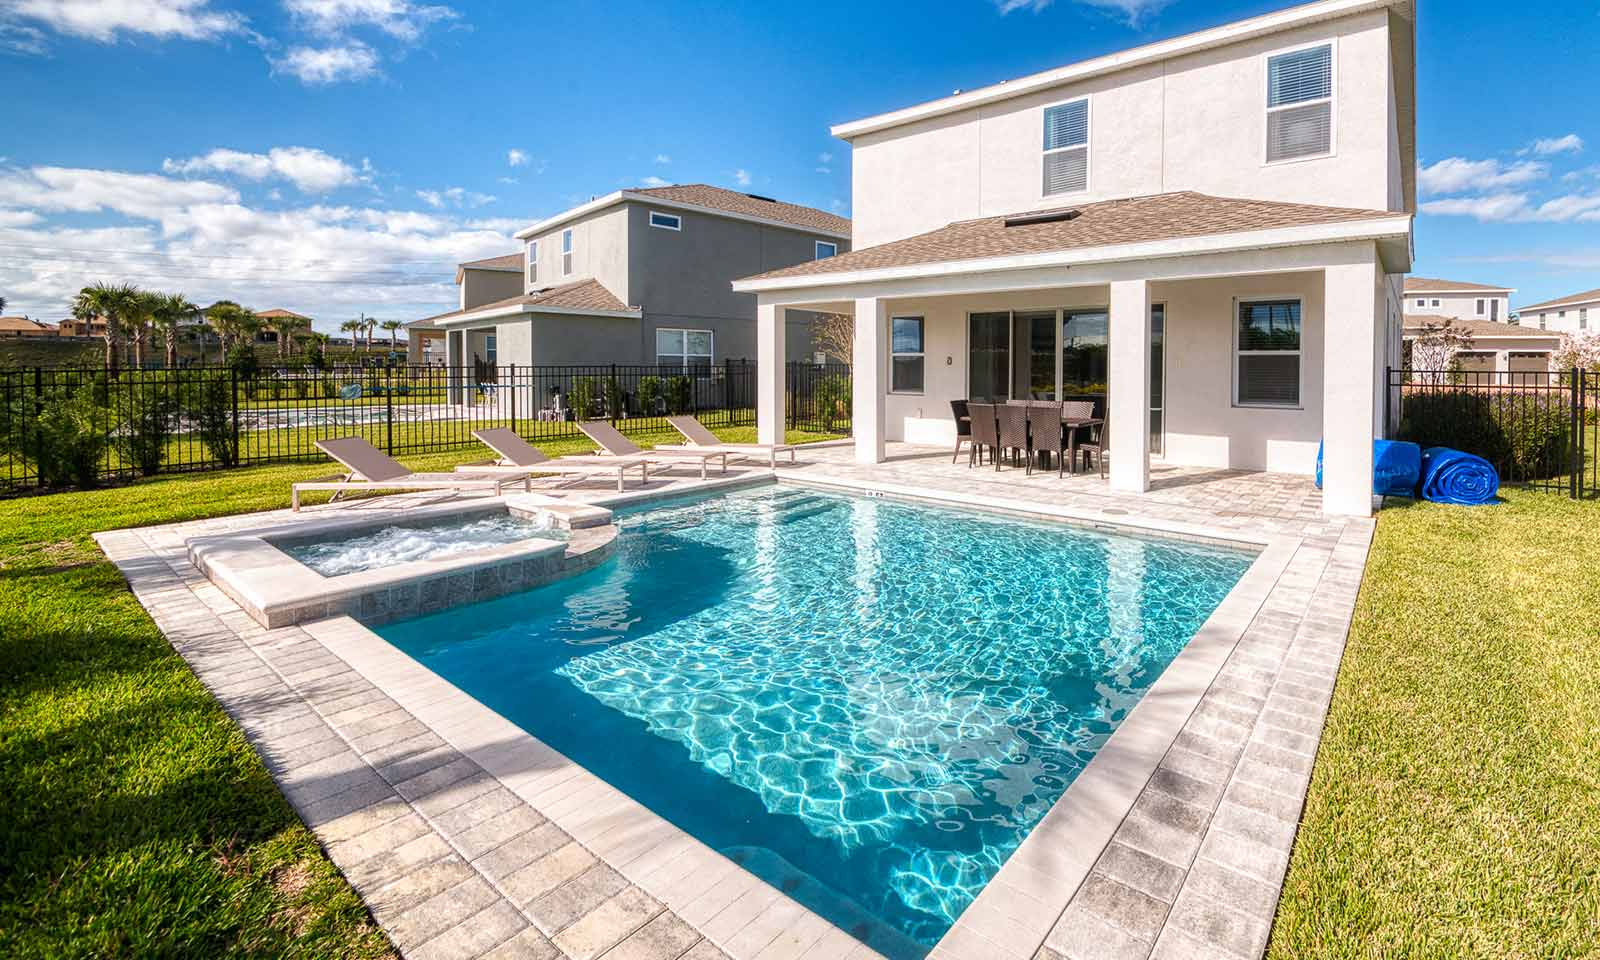 [amenities:private-pool:2] Private Pool